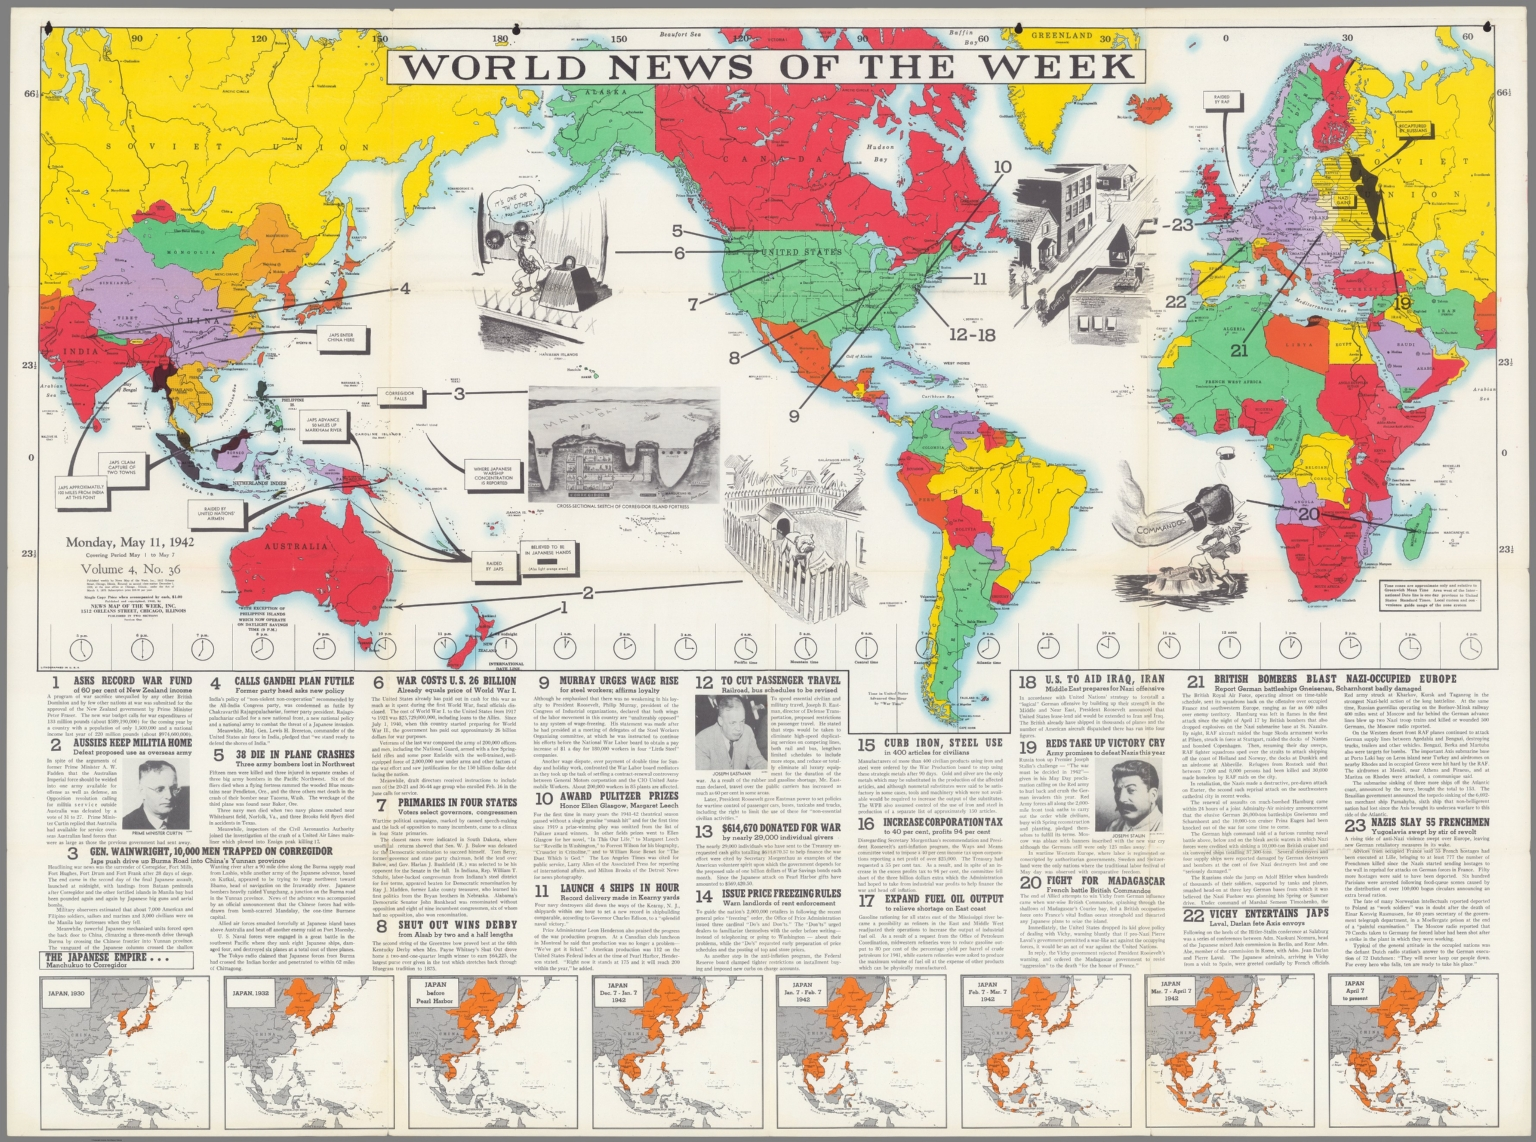 World News of the Week : Monday, May 11, 1942.